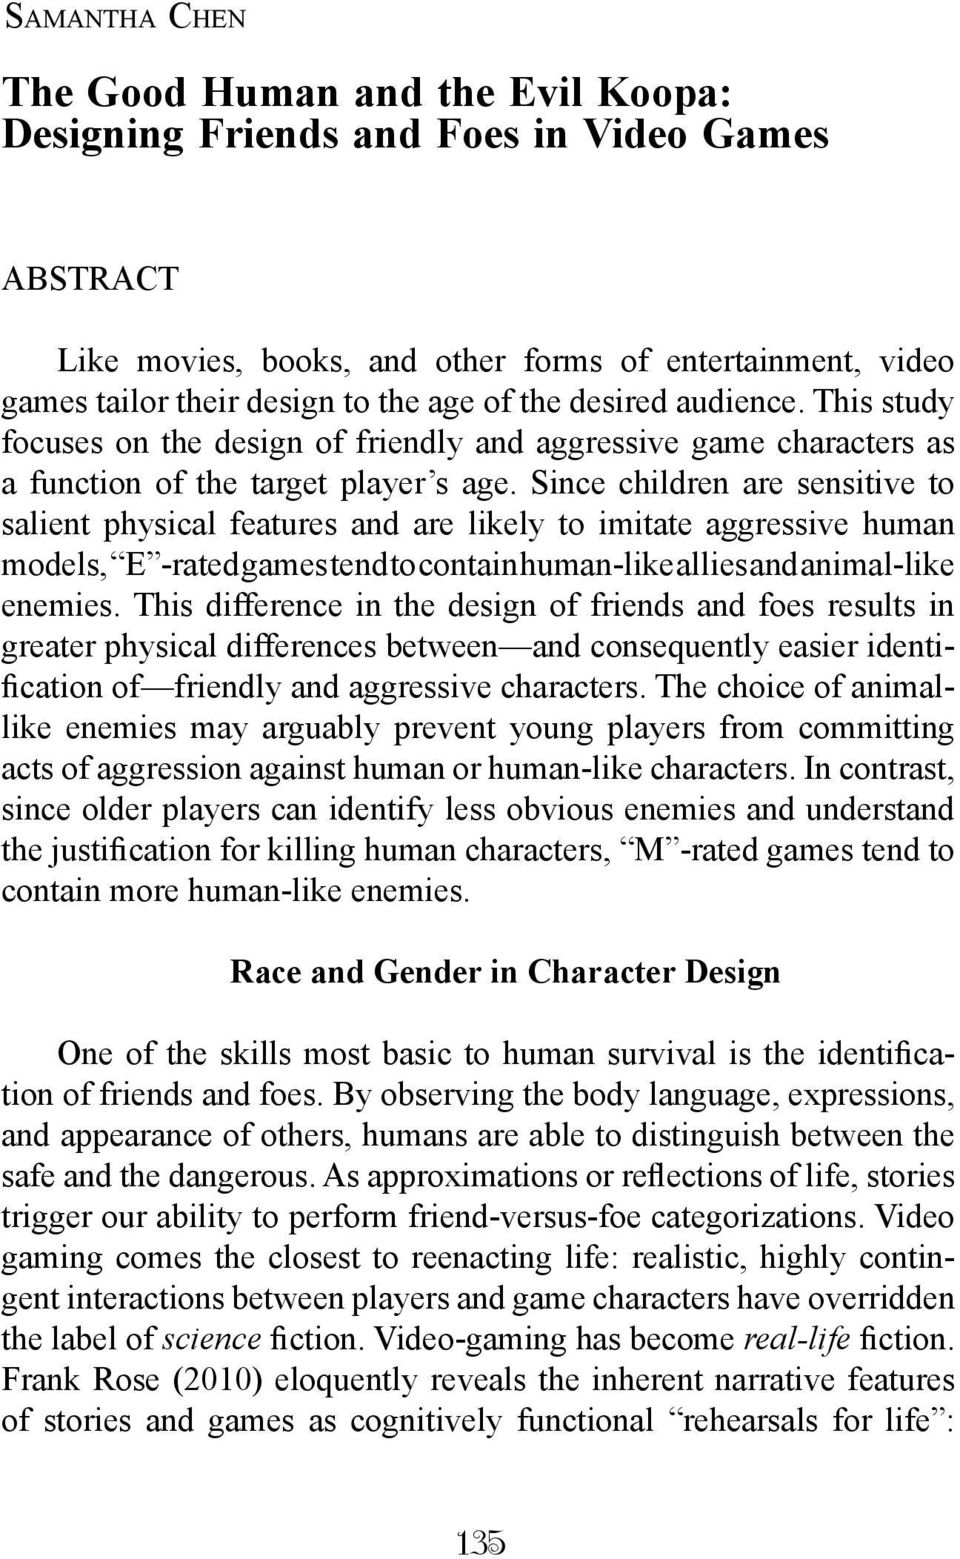 Since children are sensitive to salient physical features and are likely to imitate aggressive human models, E -rated games tend to contain human-like allies and animal-like enemies.